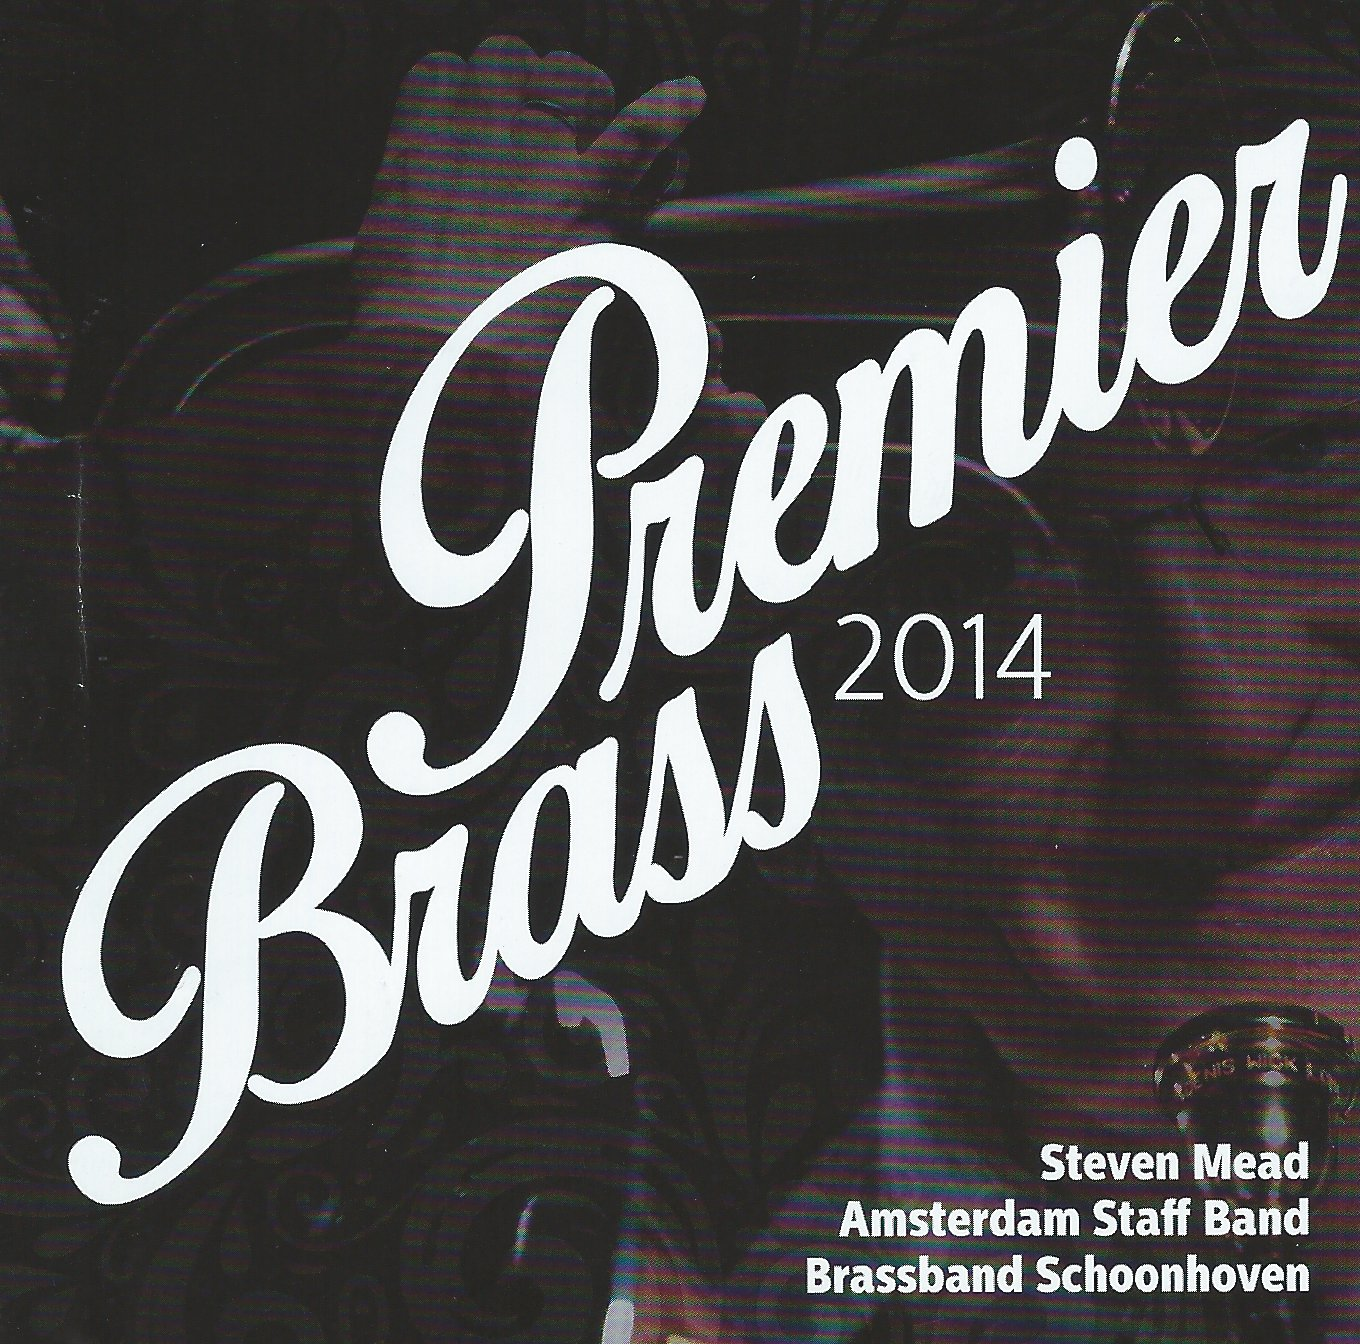 CD - Premier Brass 2014 (live recording) - Steven Mead (soloist) with Amsterdam Staff Band and Brassband Schoonhoven